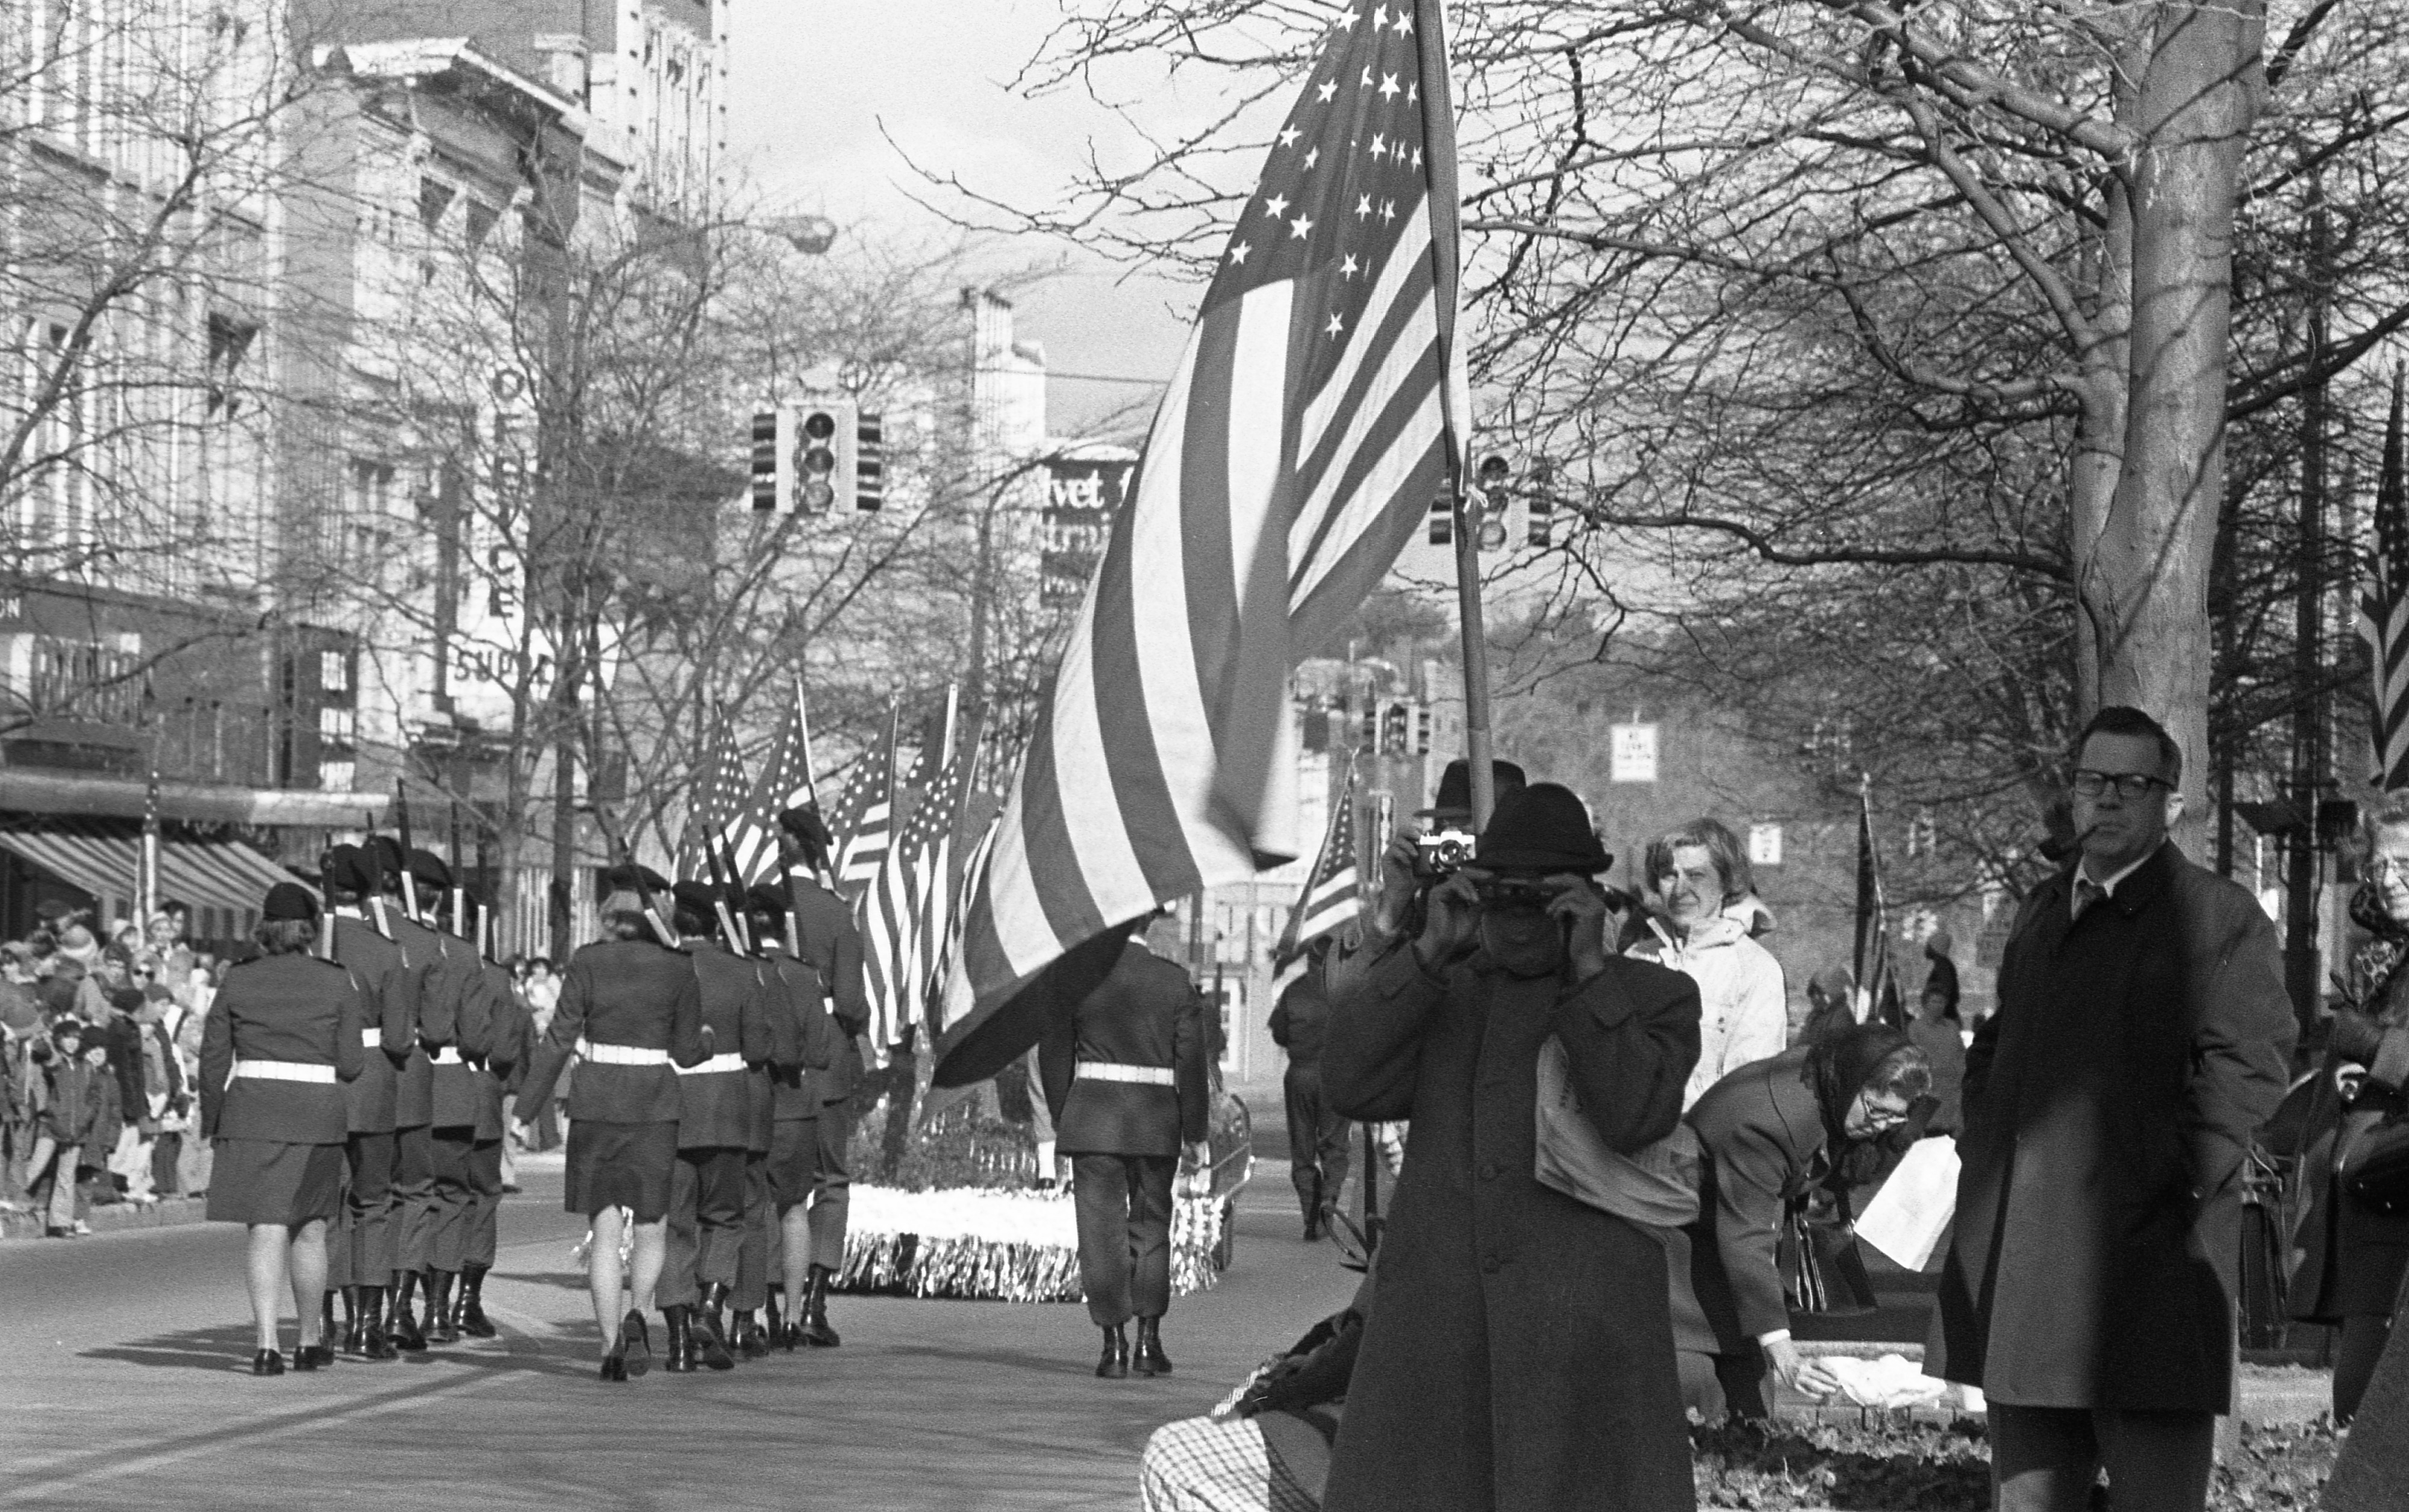 American Legion Post 322, Saline, Marches Past In The Ann Arbor Veterans Day Parade - November 11, 1976 image